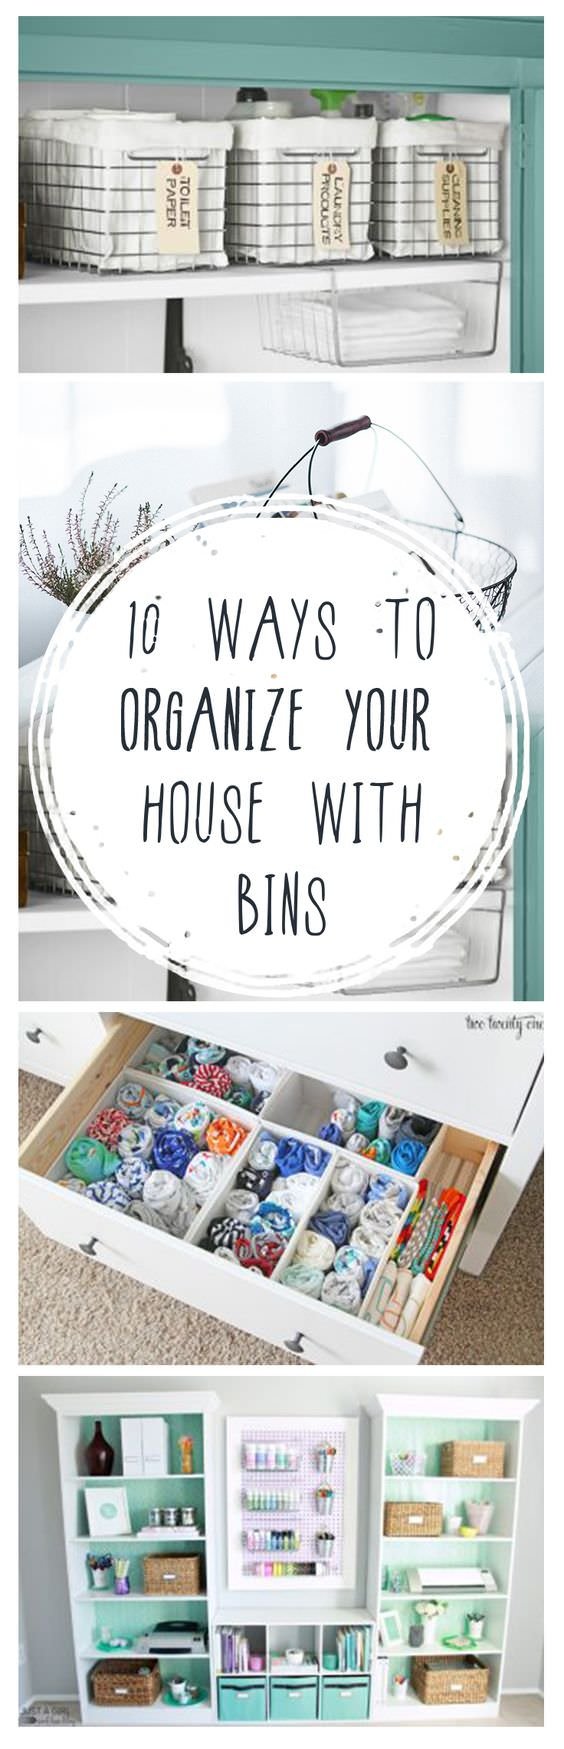 It's easy to organize your house with bins using these ideas. Use them to store clothes, organize files, your cleaning supplies and much more!